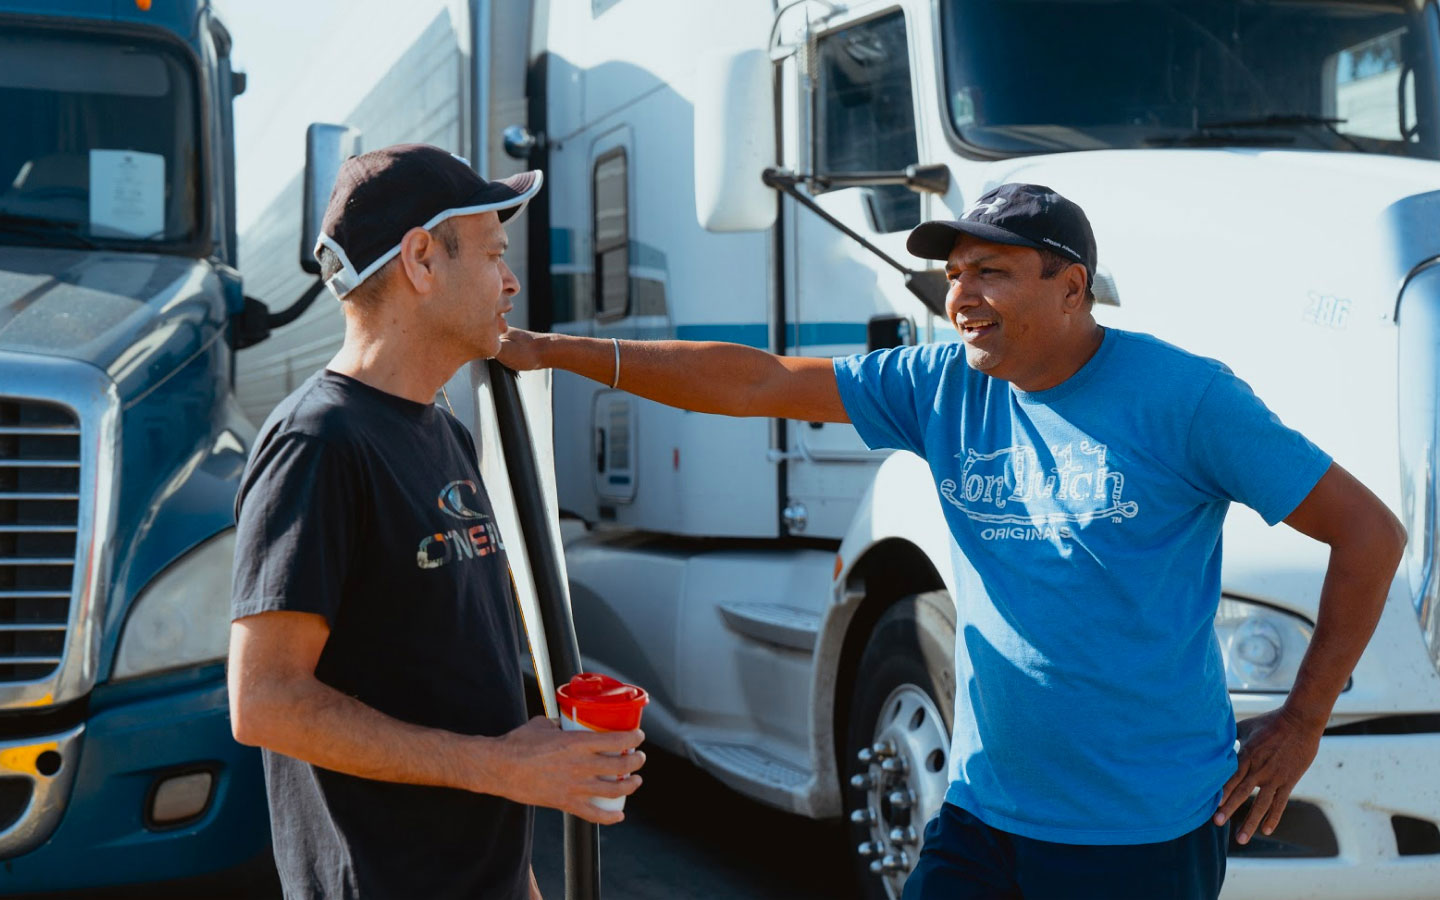 The Complete Guide to FMCSA's 30 Minute Break Rule